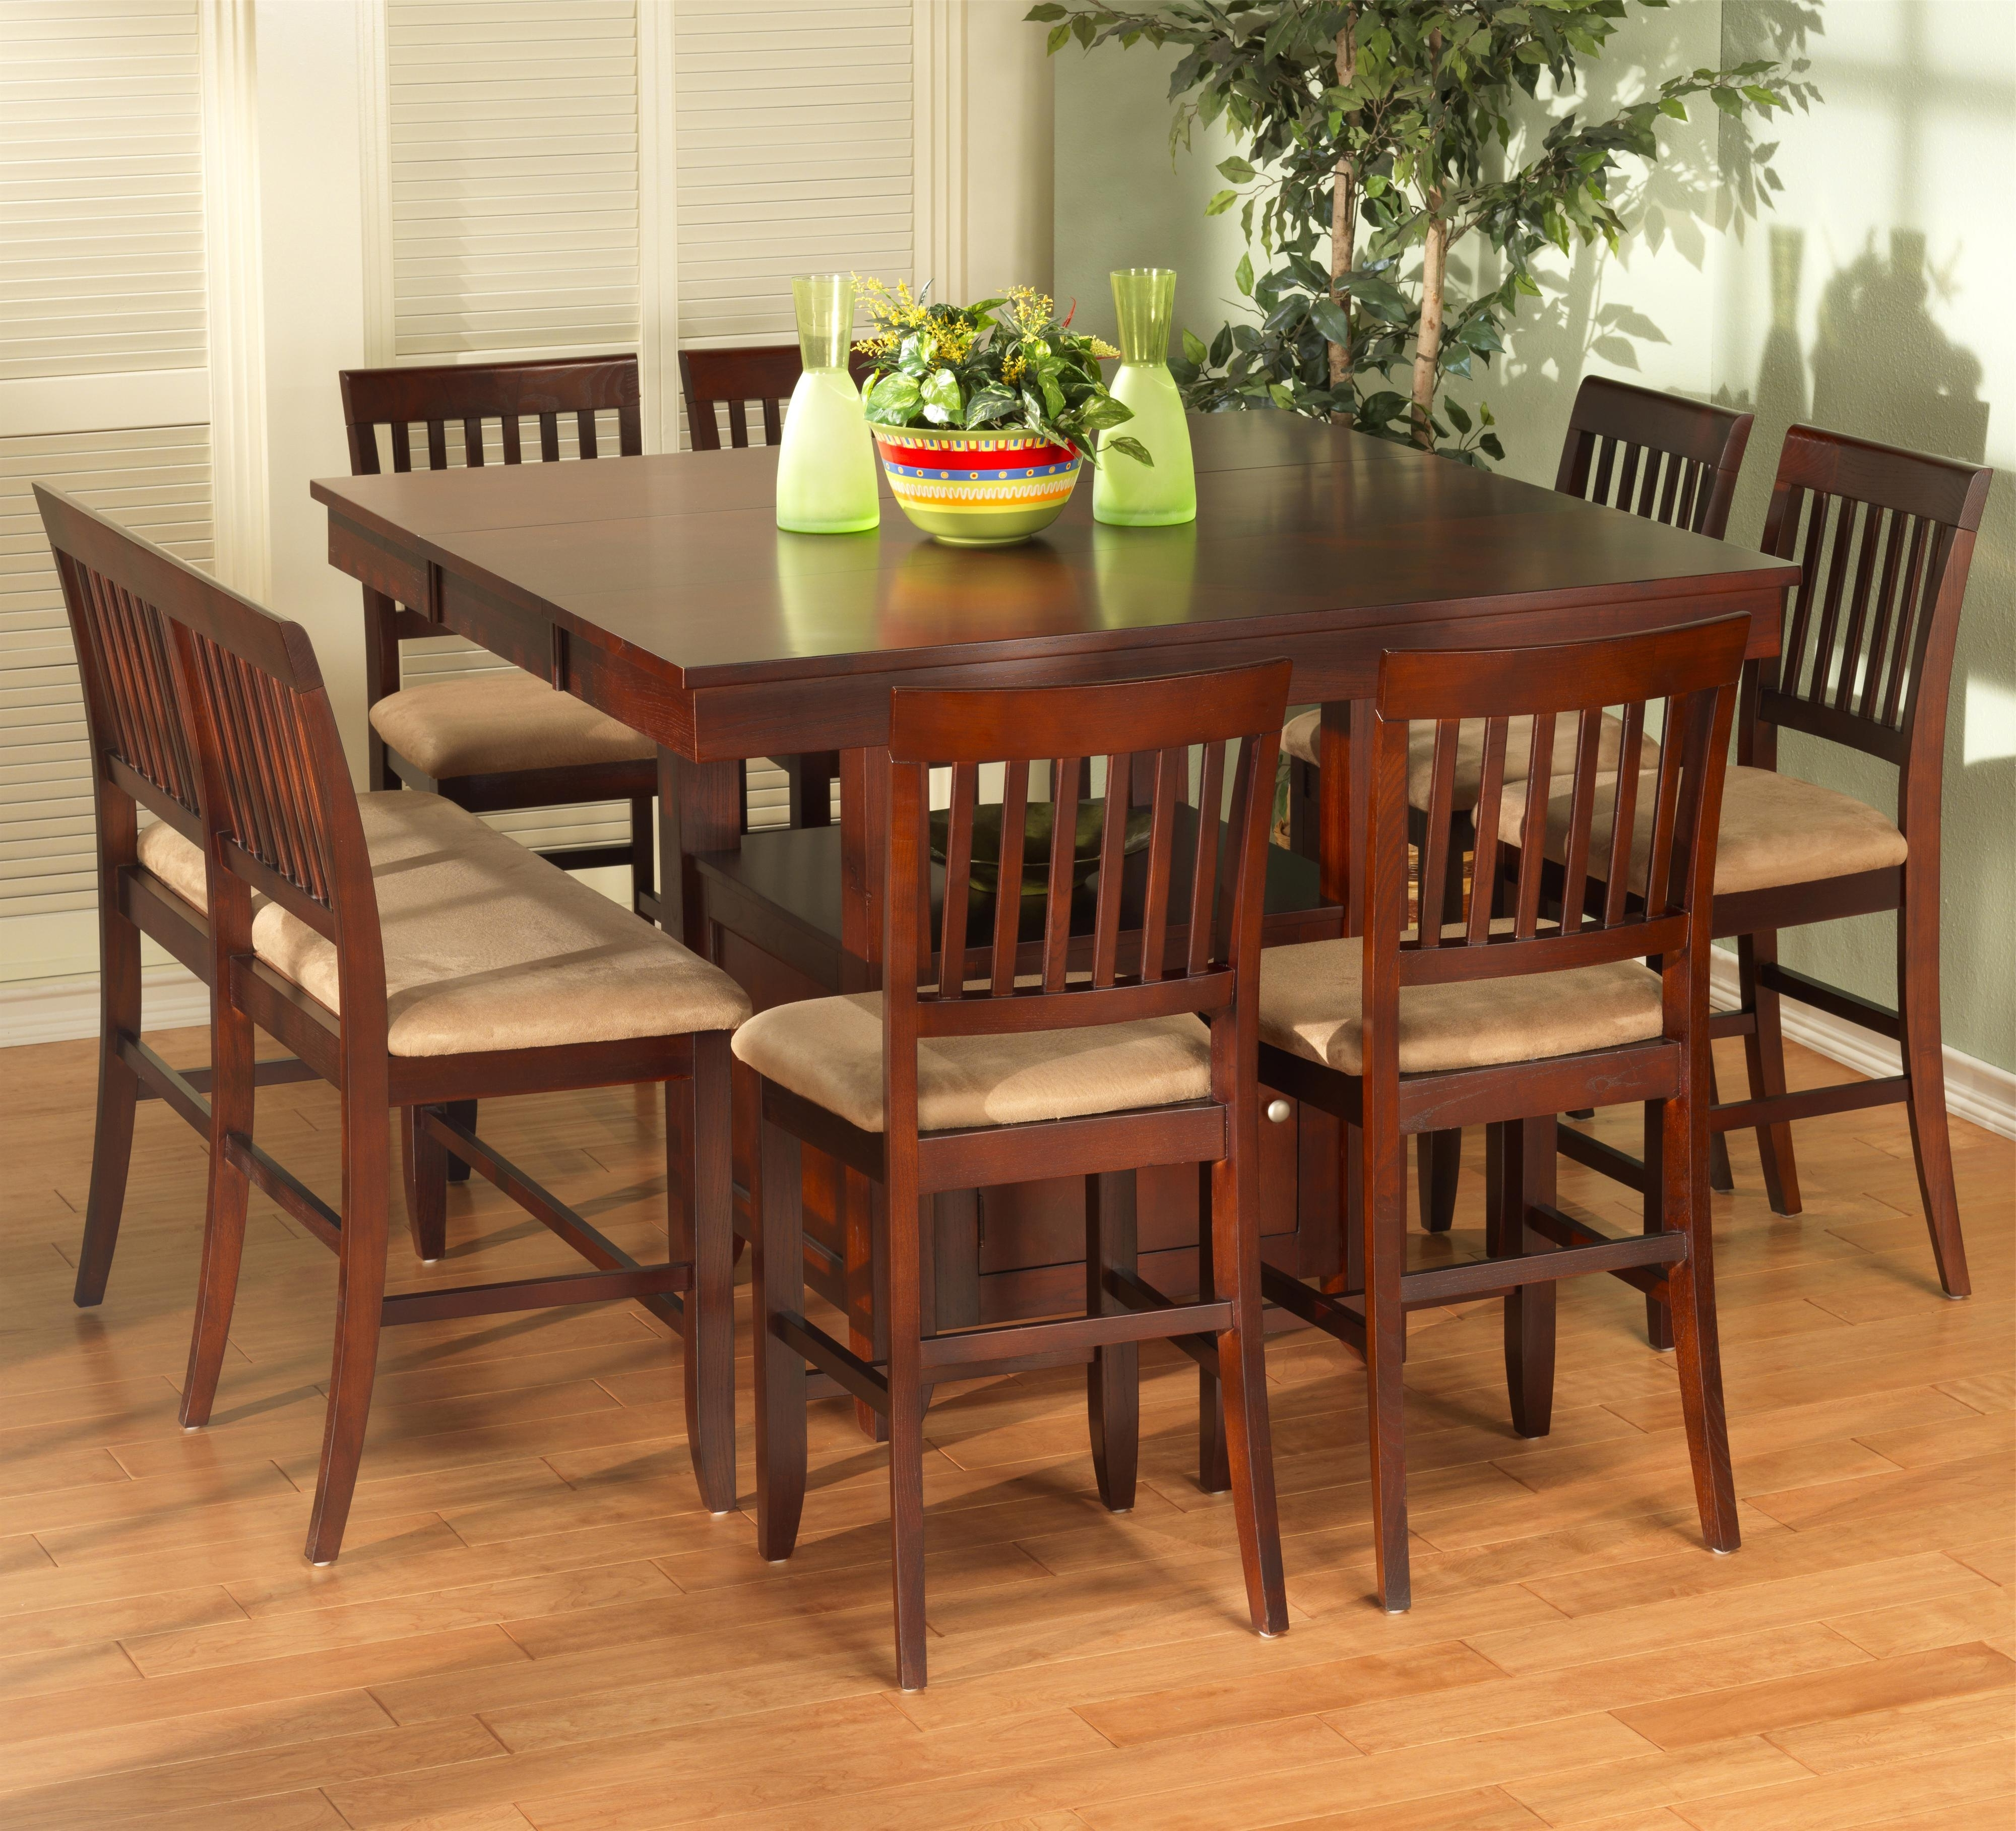 New Classic Brendan 8 Piece Storage Pub Table, Bench, And Counter Pertaining To Most Recently Released Dining Tables And 8 Chairs Sets (View 16 of 25)